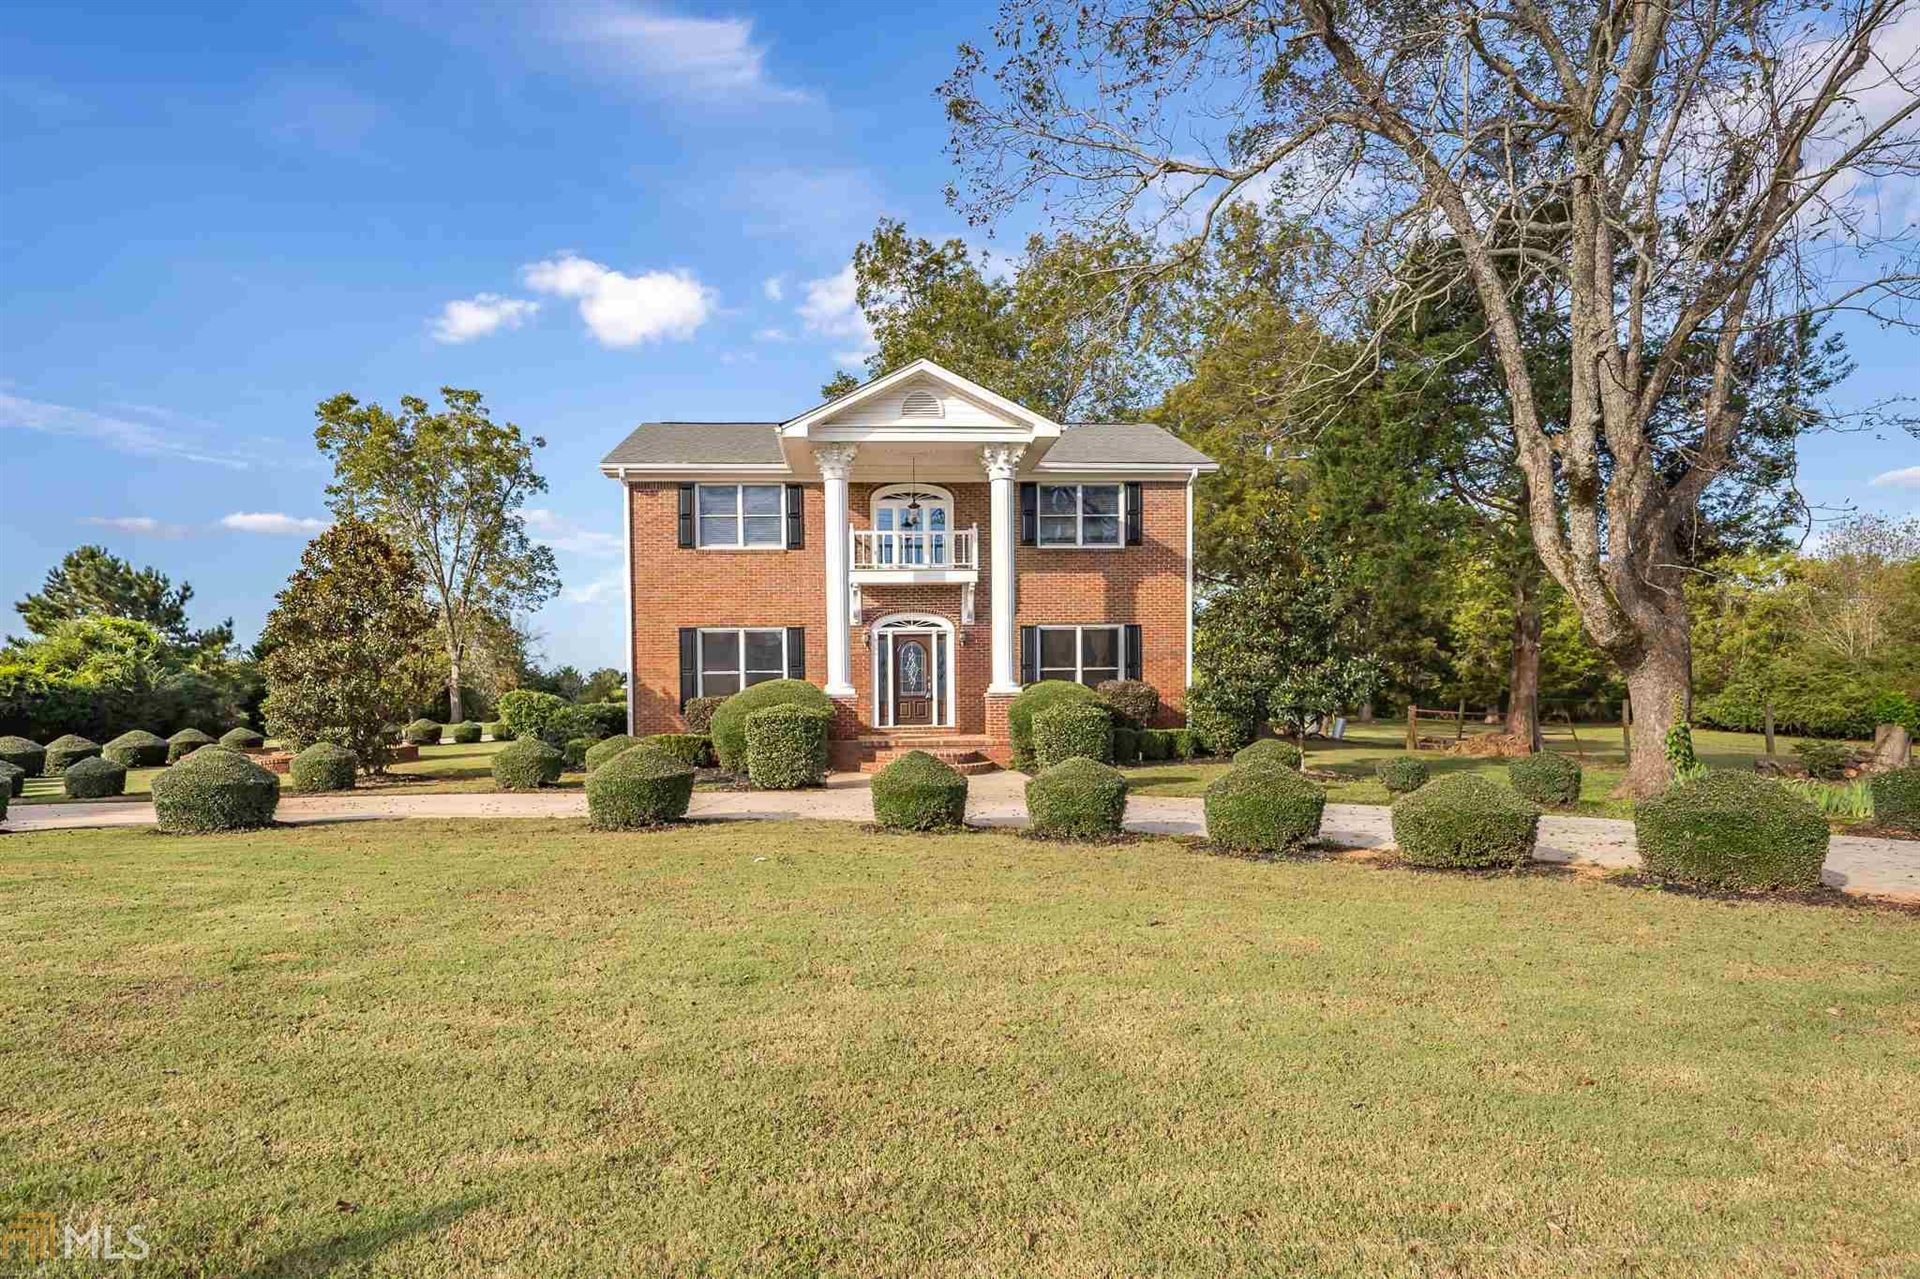 1925 Keys Ferry Rd, McDonough, GA 30252 - #: 8876899